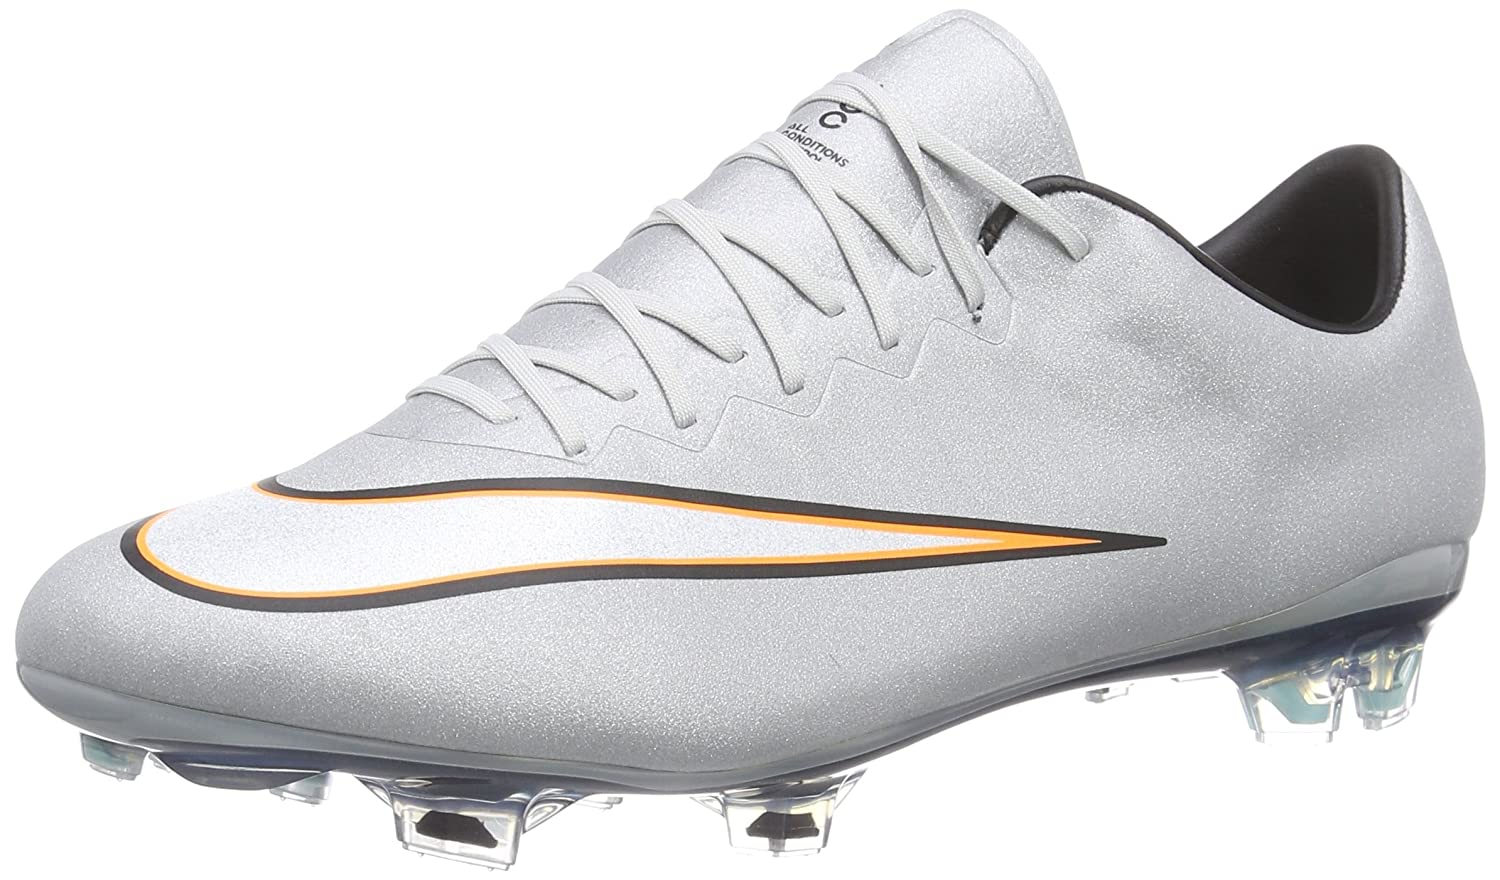 Nike Mercurial Vapor X CR Firm Ground (METALLIC SILVER/HYPER TURQ/BRIGHT CITRUS/WHITE) B0046BK86A 6.5 D(M) US